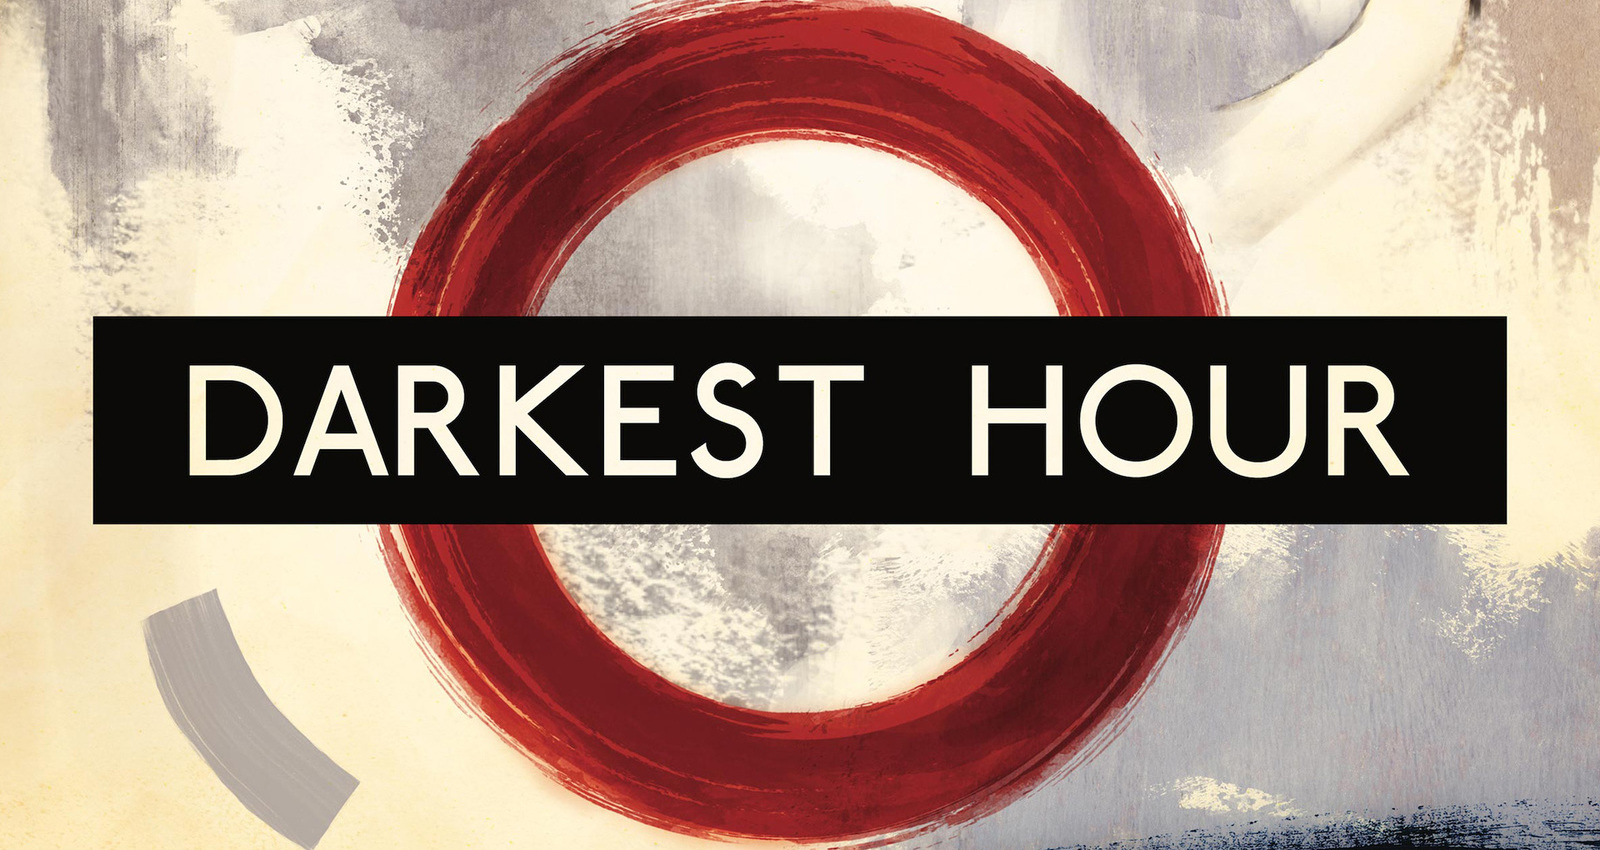 Darkest Hour- Shutterstock Oscar Pop Poster Series 2018